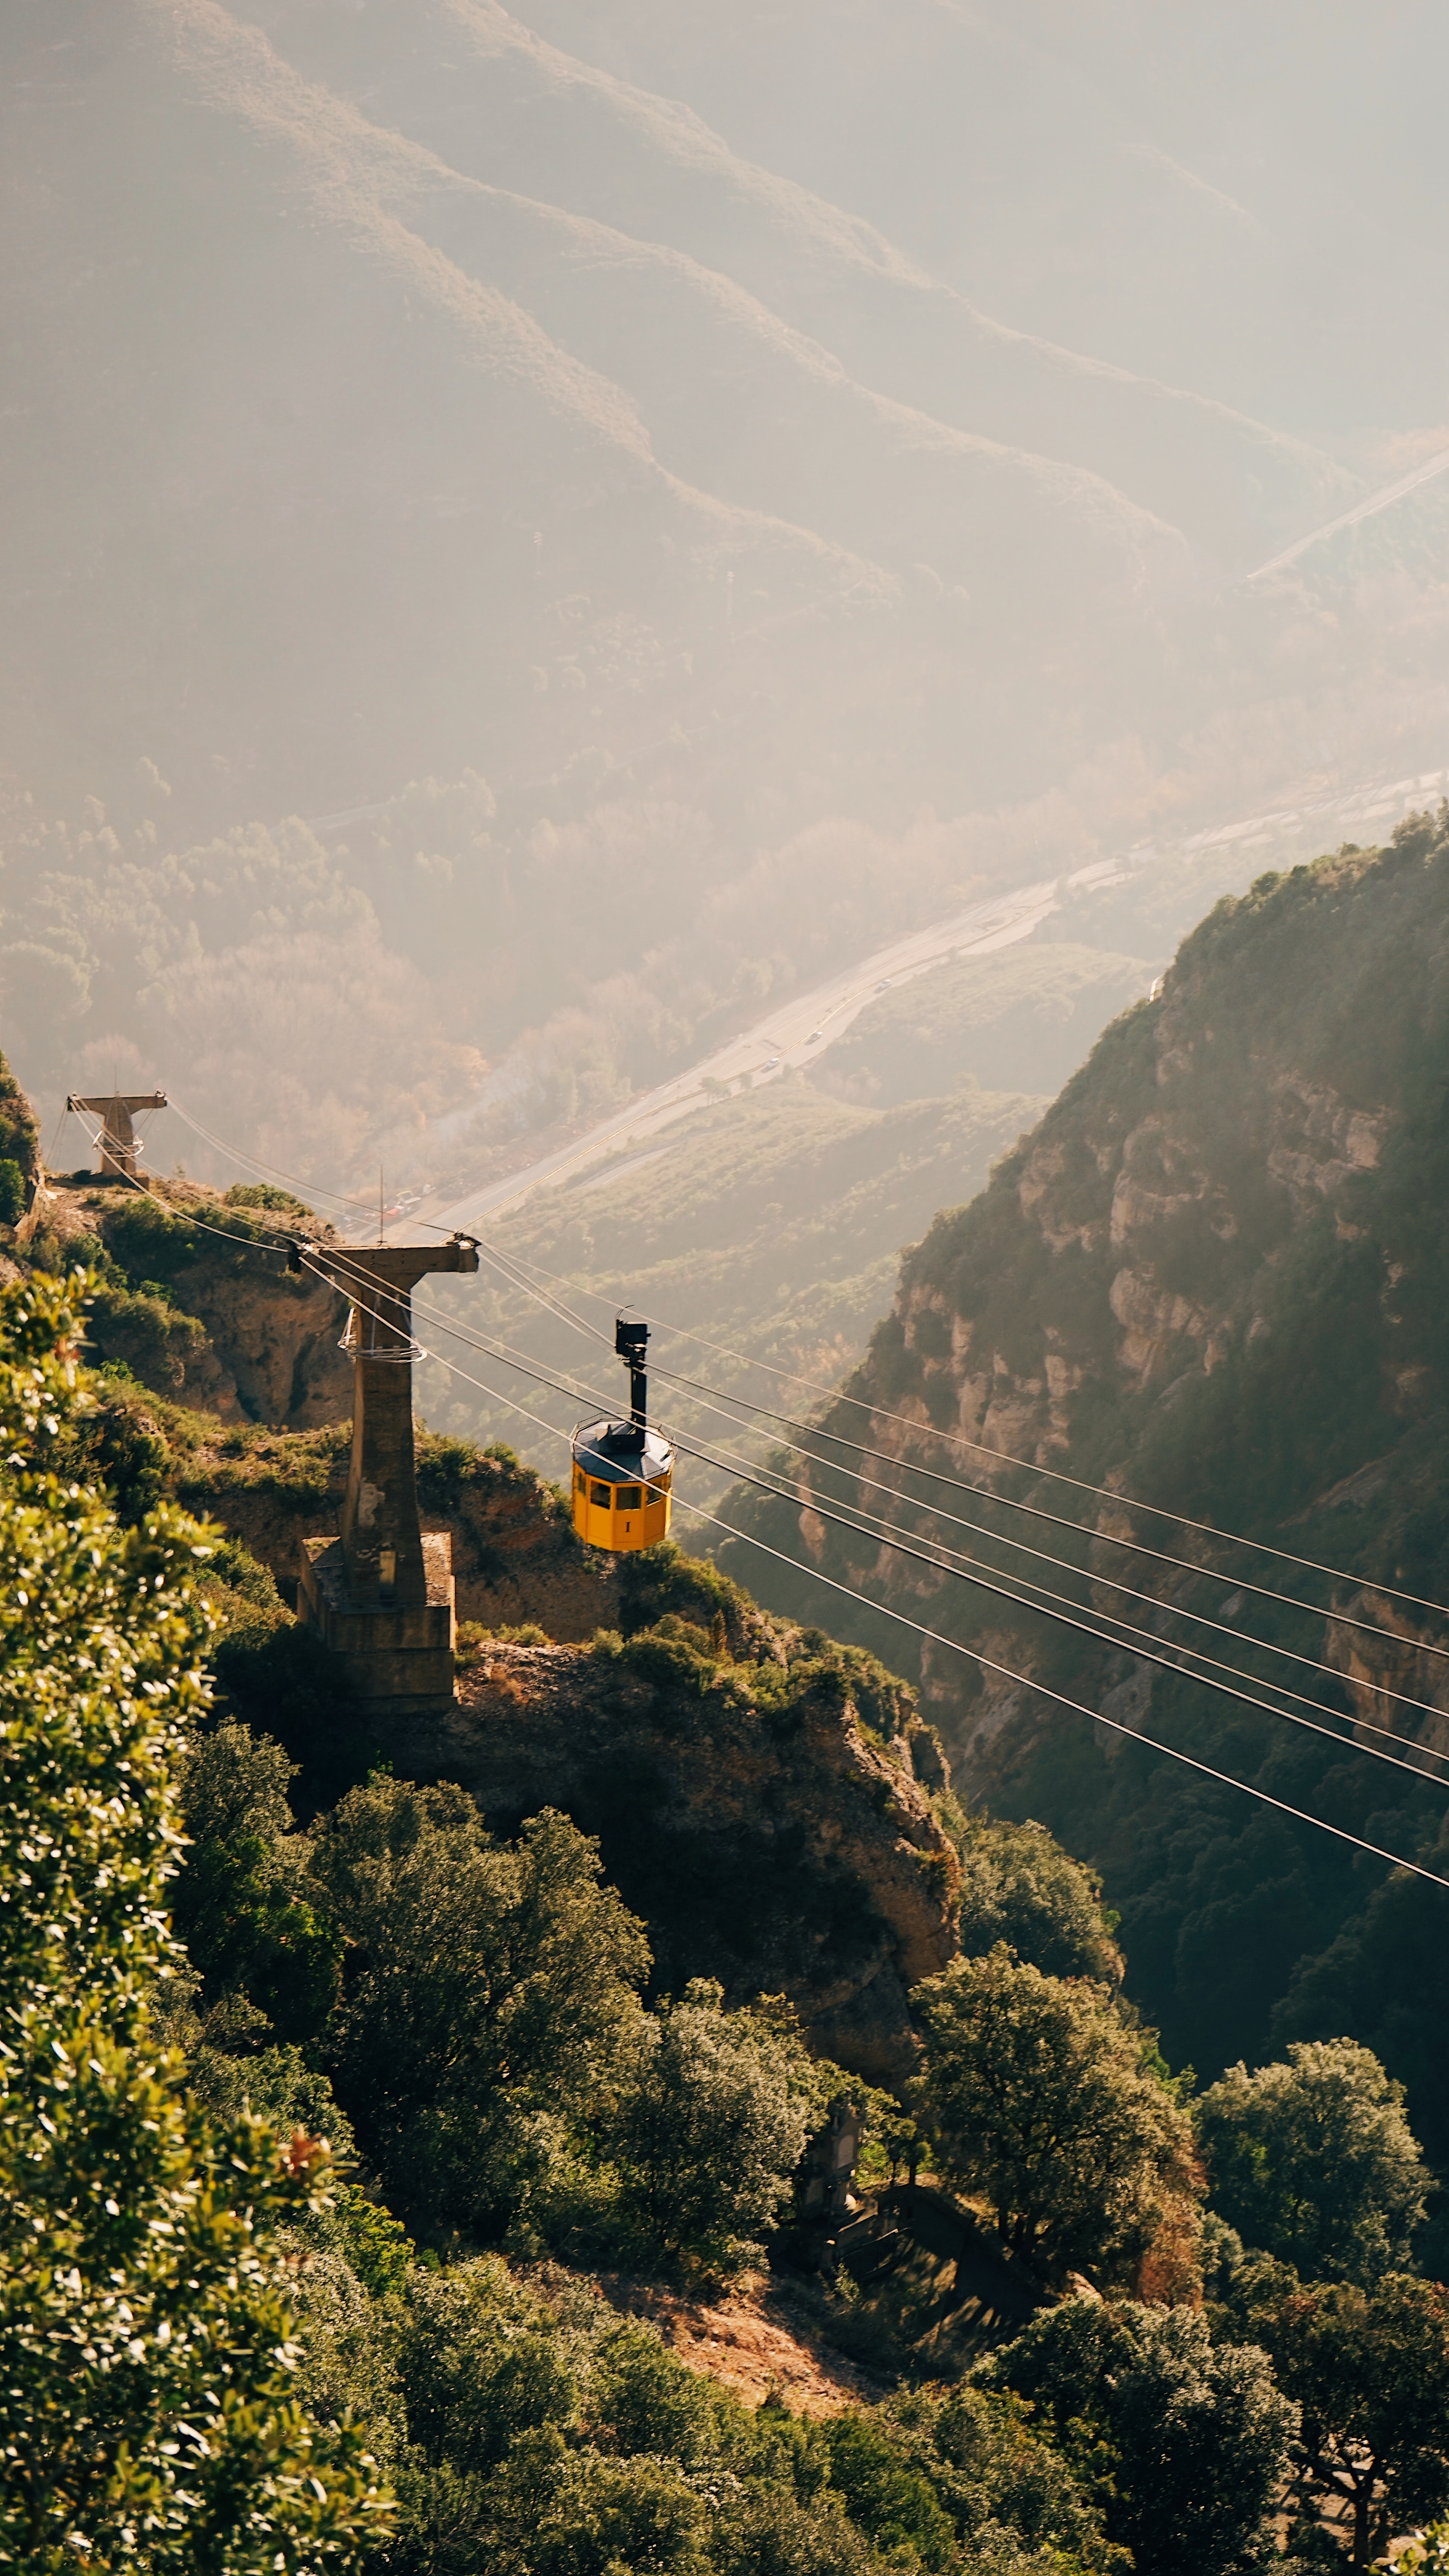 yellow cable car crossing mountains